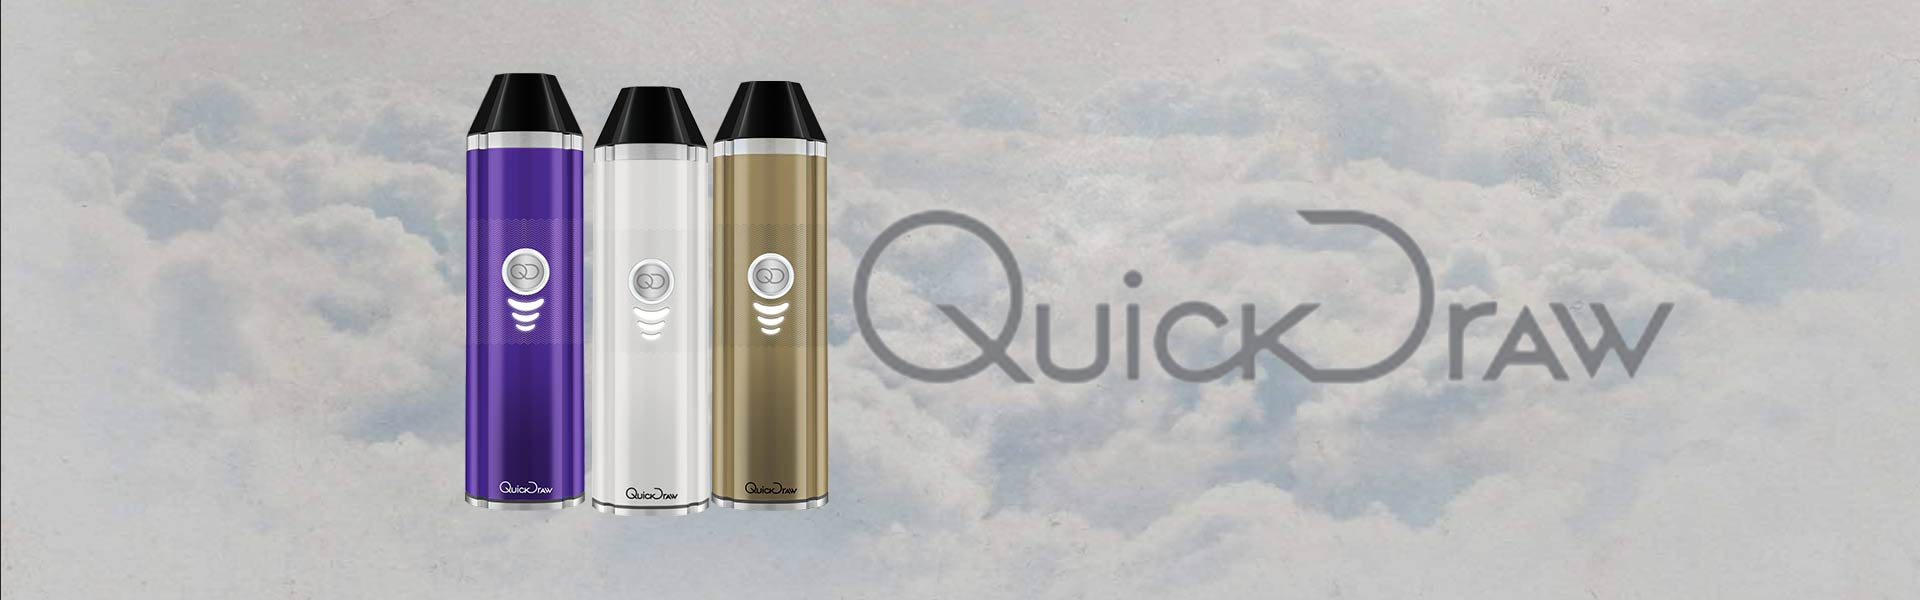 QuickDraw 500 DLX Vaporizer Review – The Pax Killer?